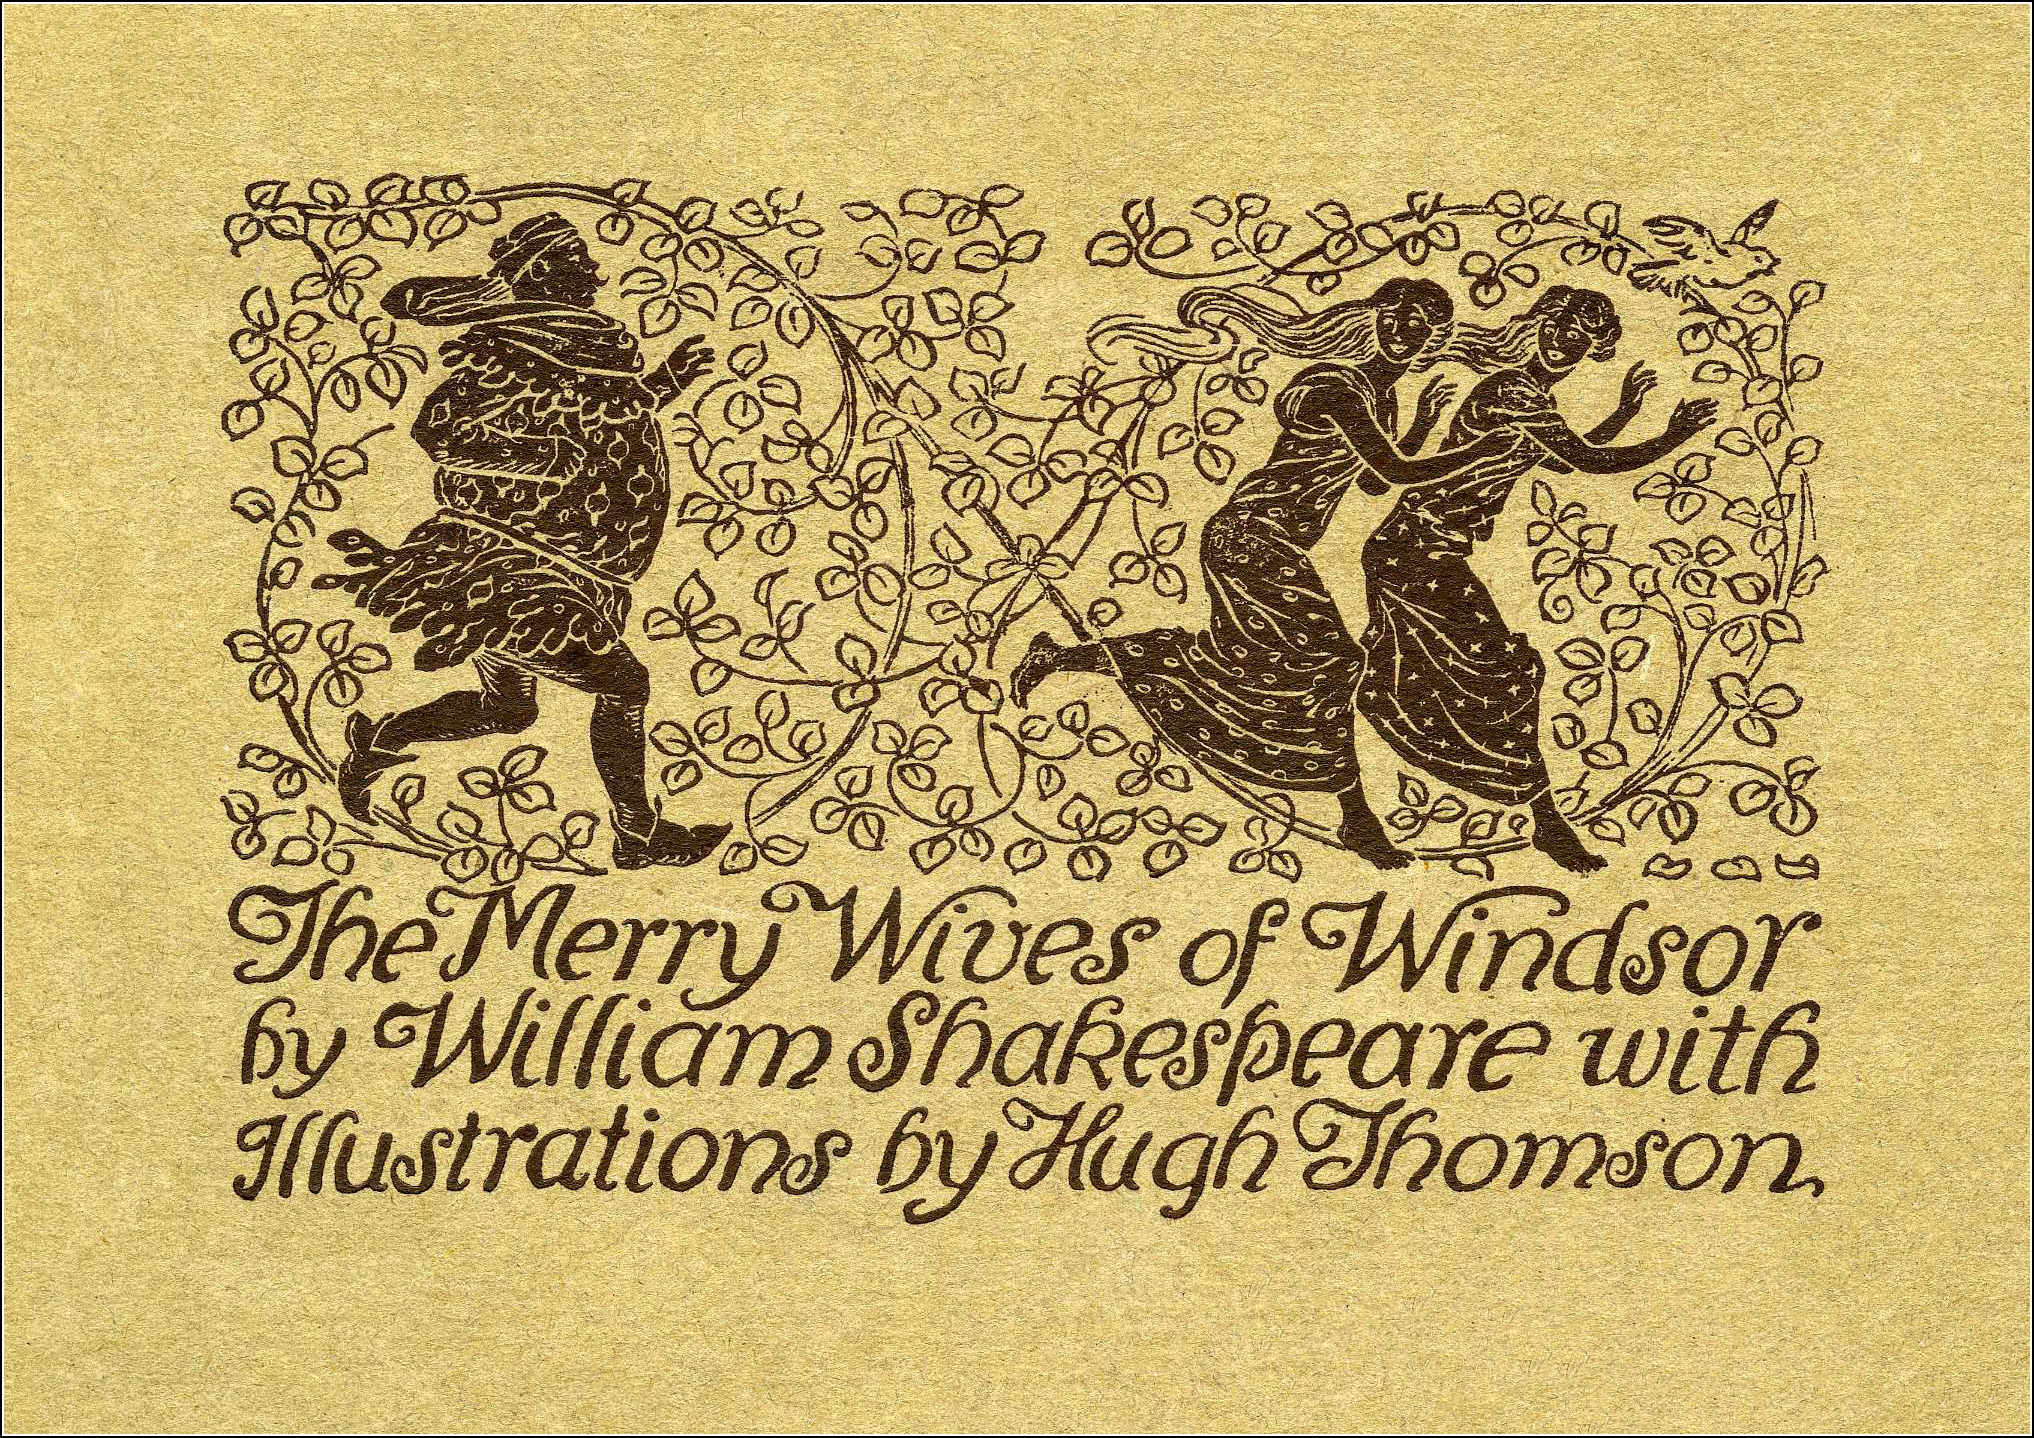 Hugh Thomson, The merry wives of Windsor